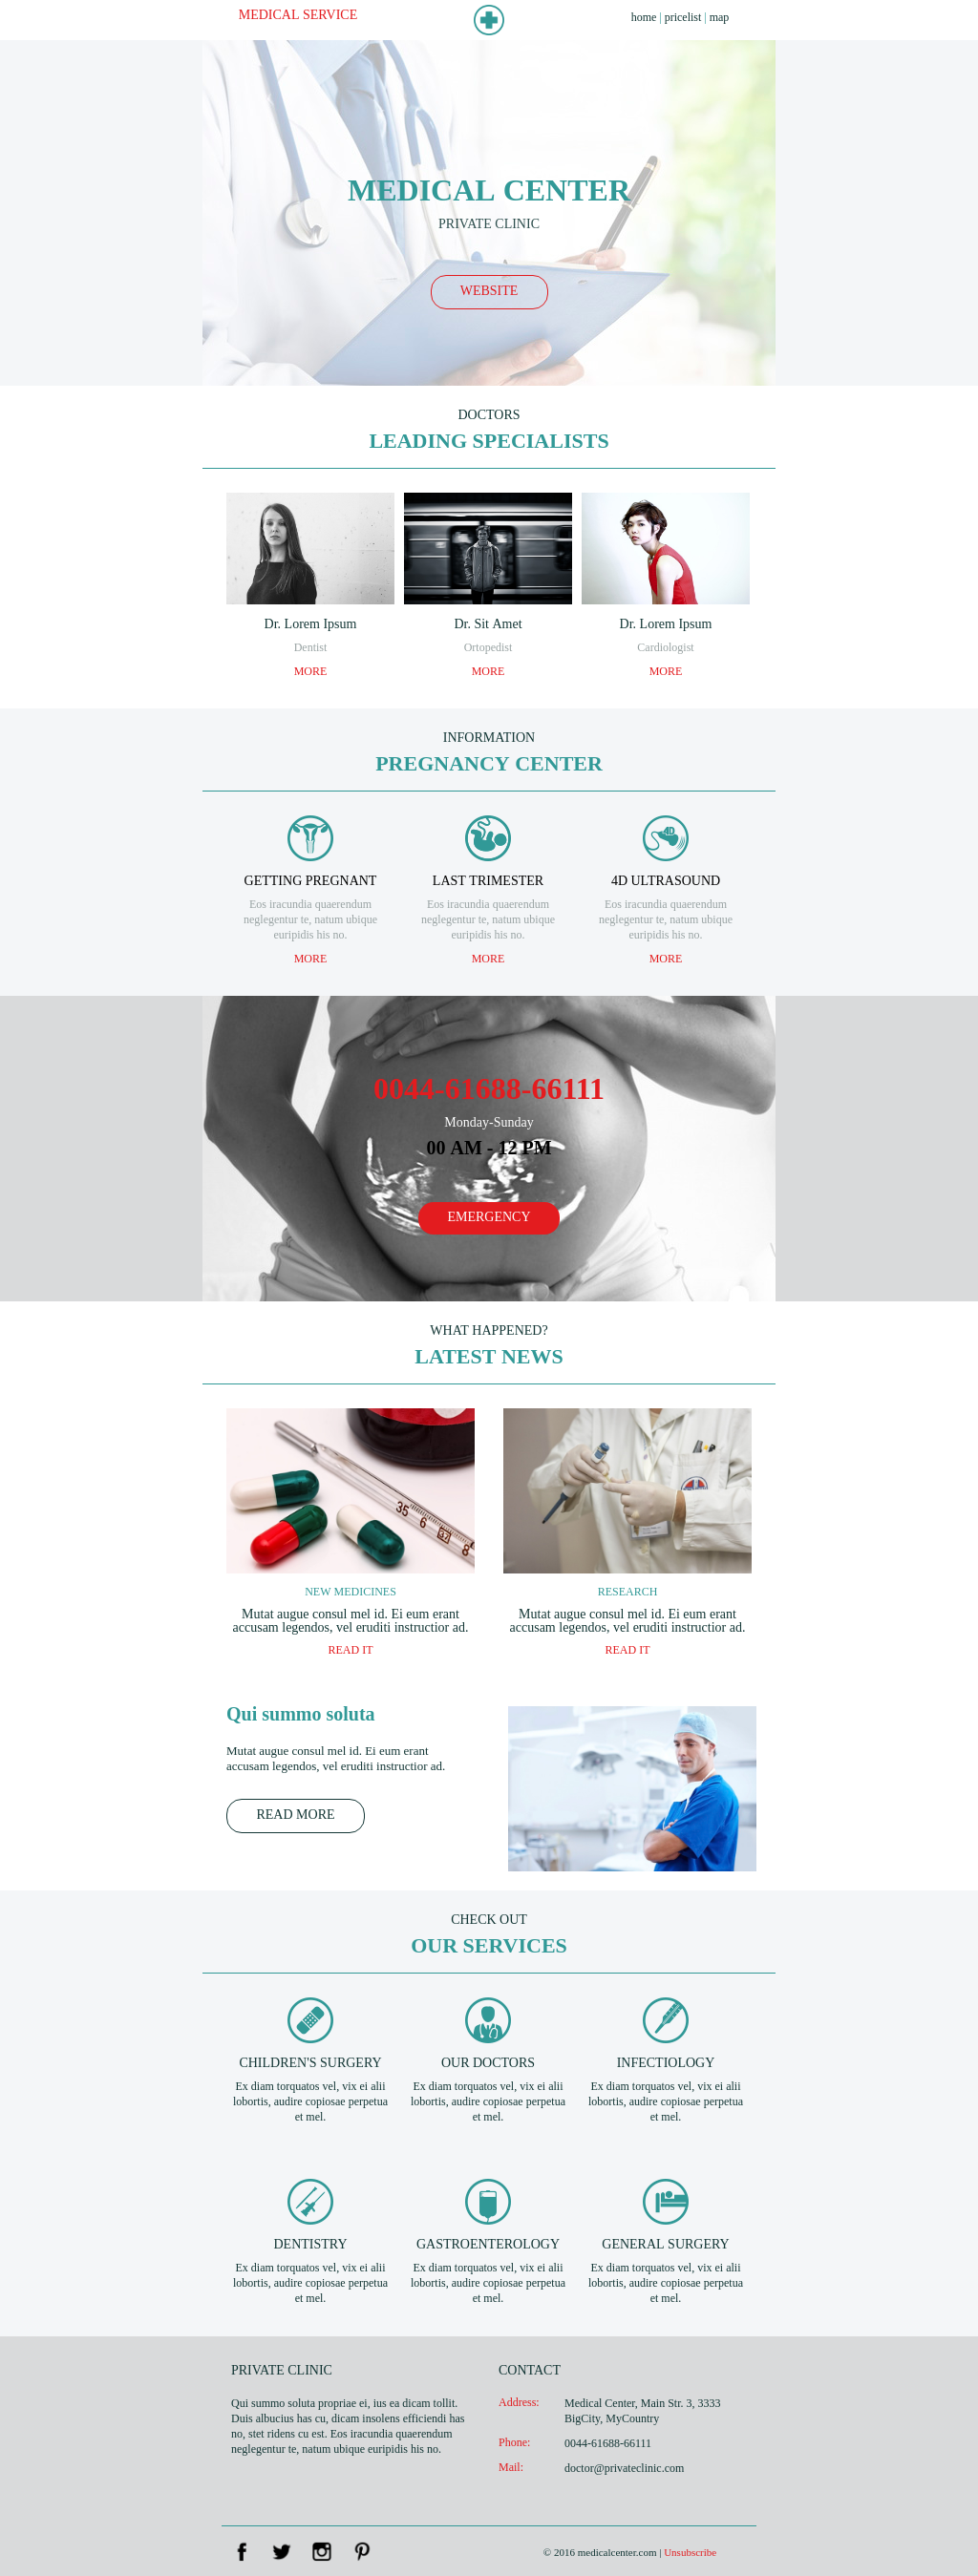 Healthcare promotional template with clean and light design